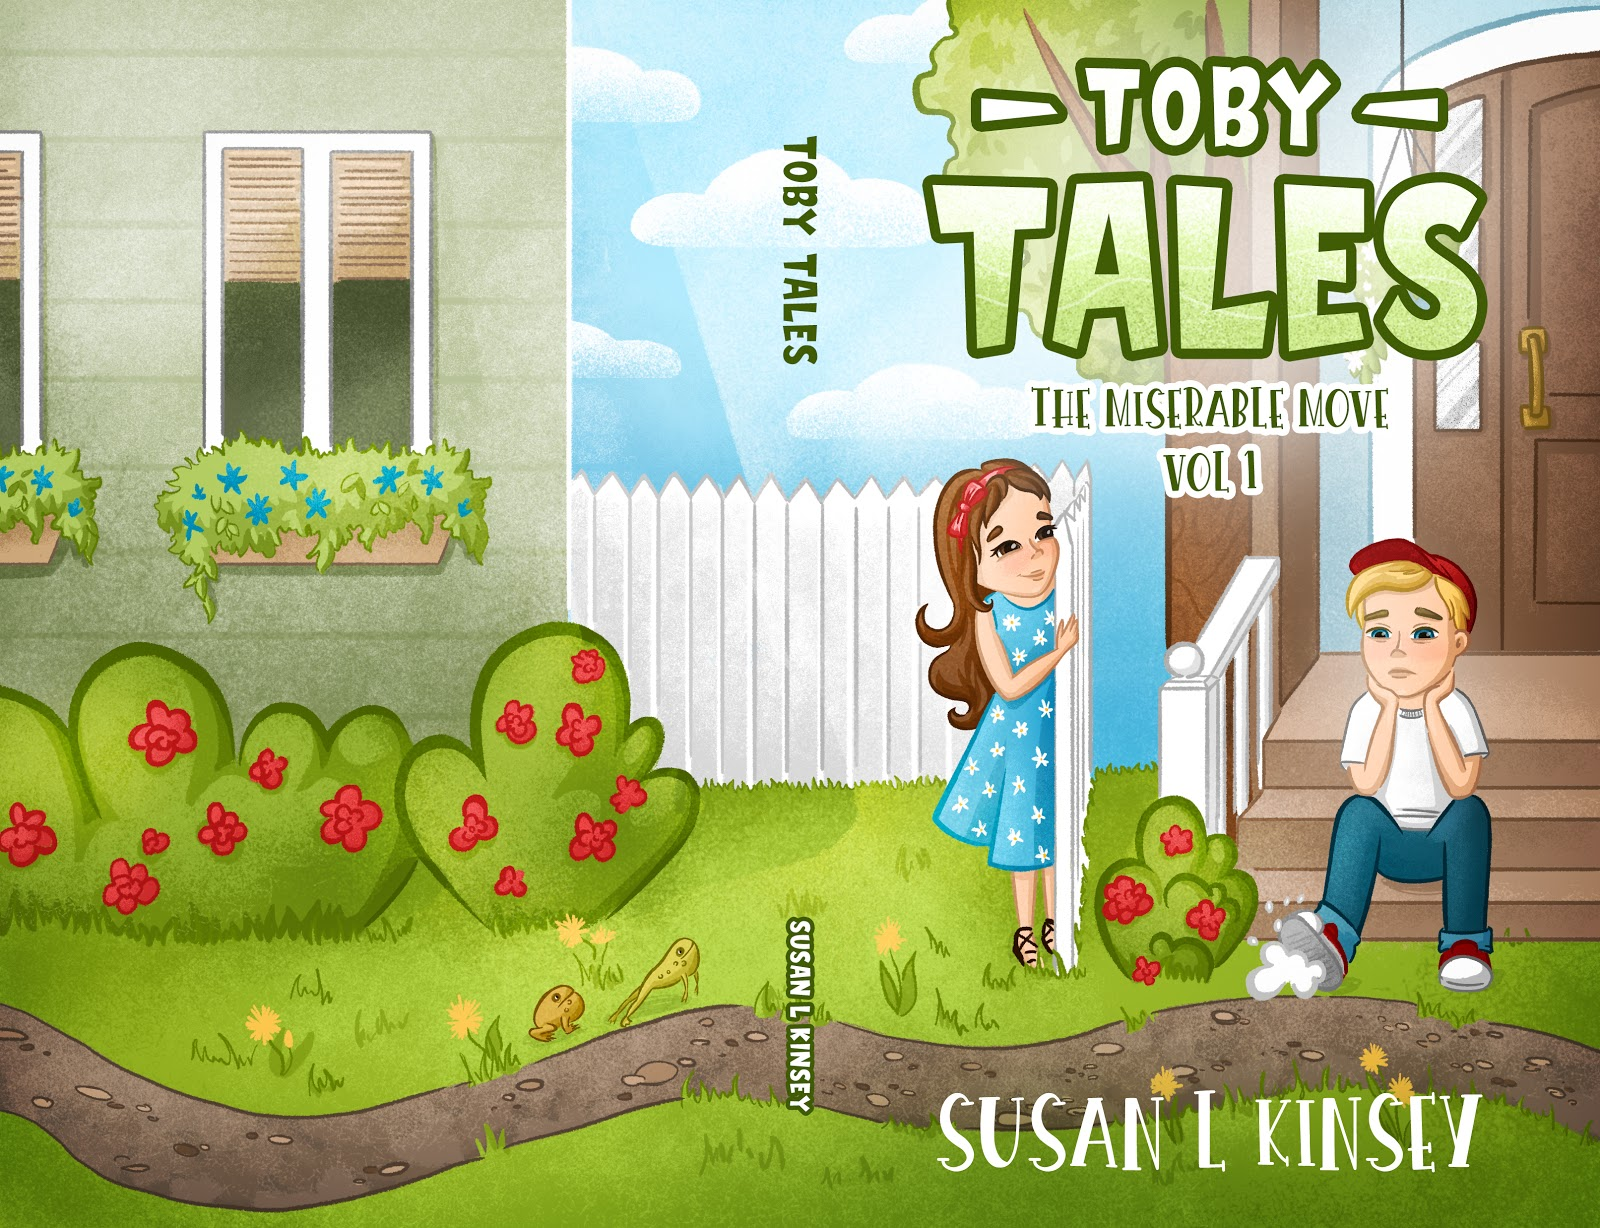 Toby Tales by Susan Kinsey as an example of children's book cover design with meaningful message